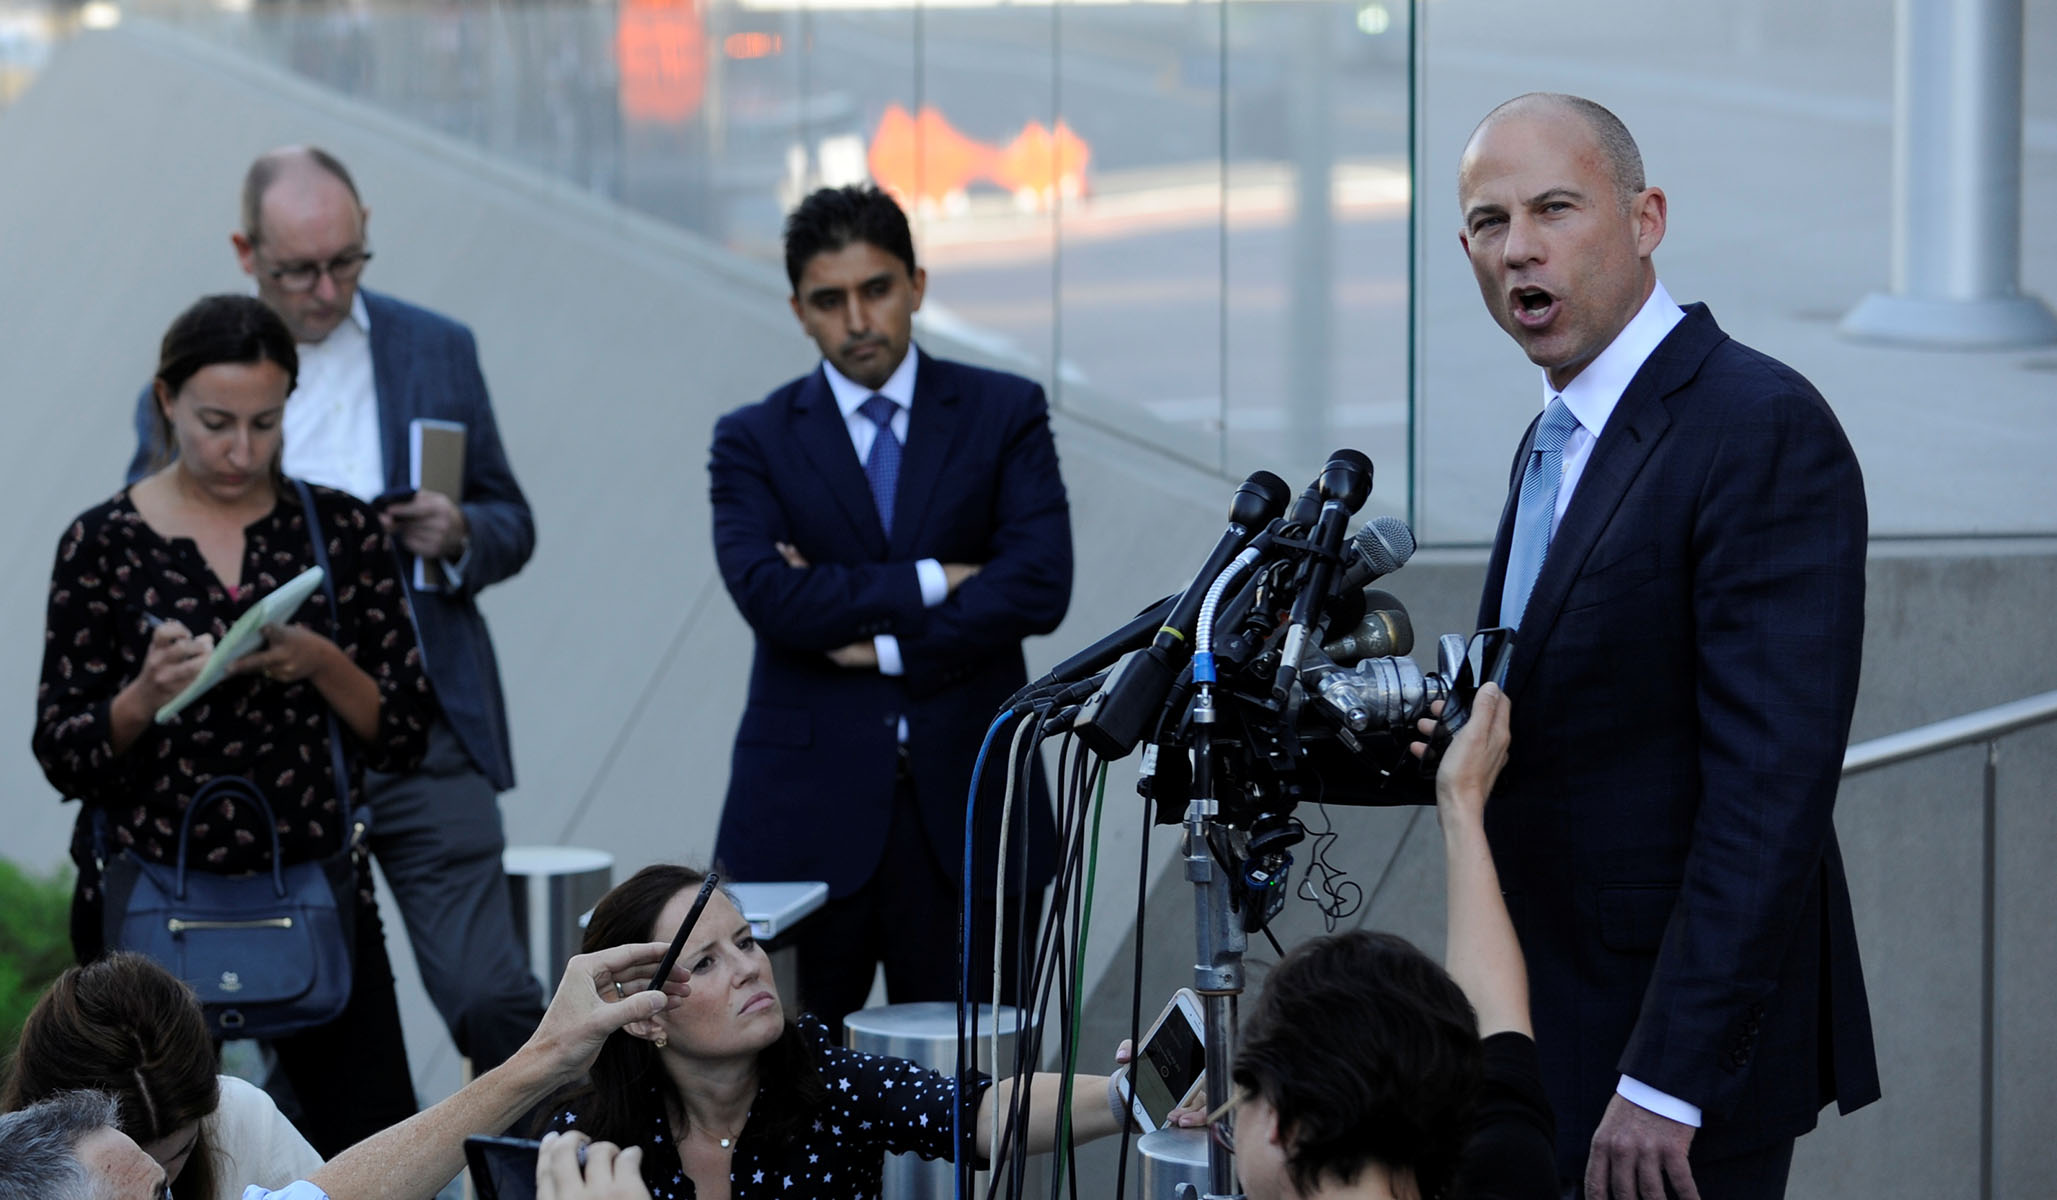 Seven Questions About the Avenatti/Swetnick Story | National Review